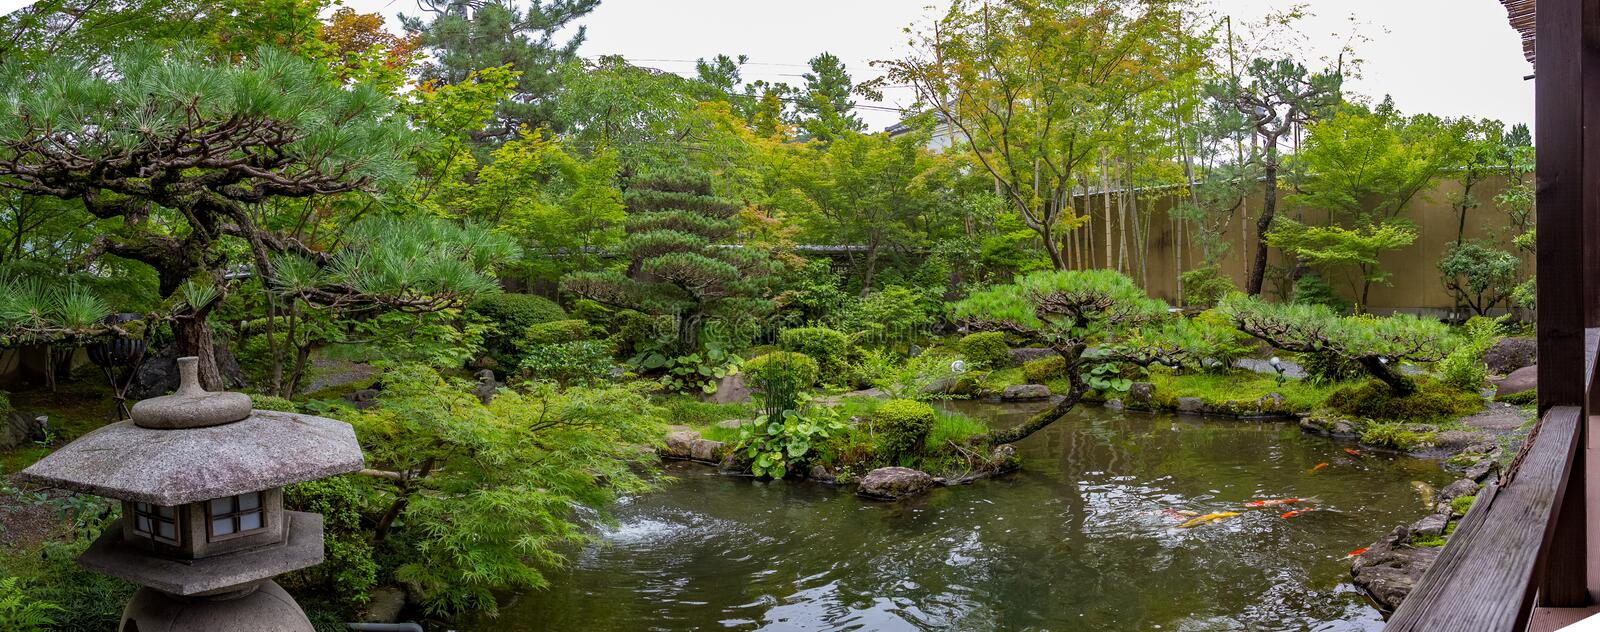 Japanese Garden Wide View stock images